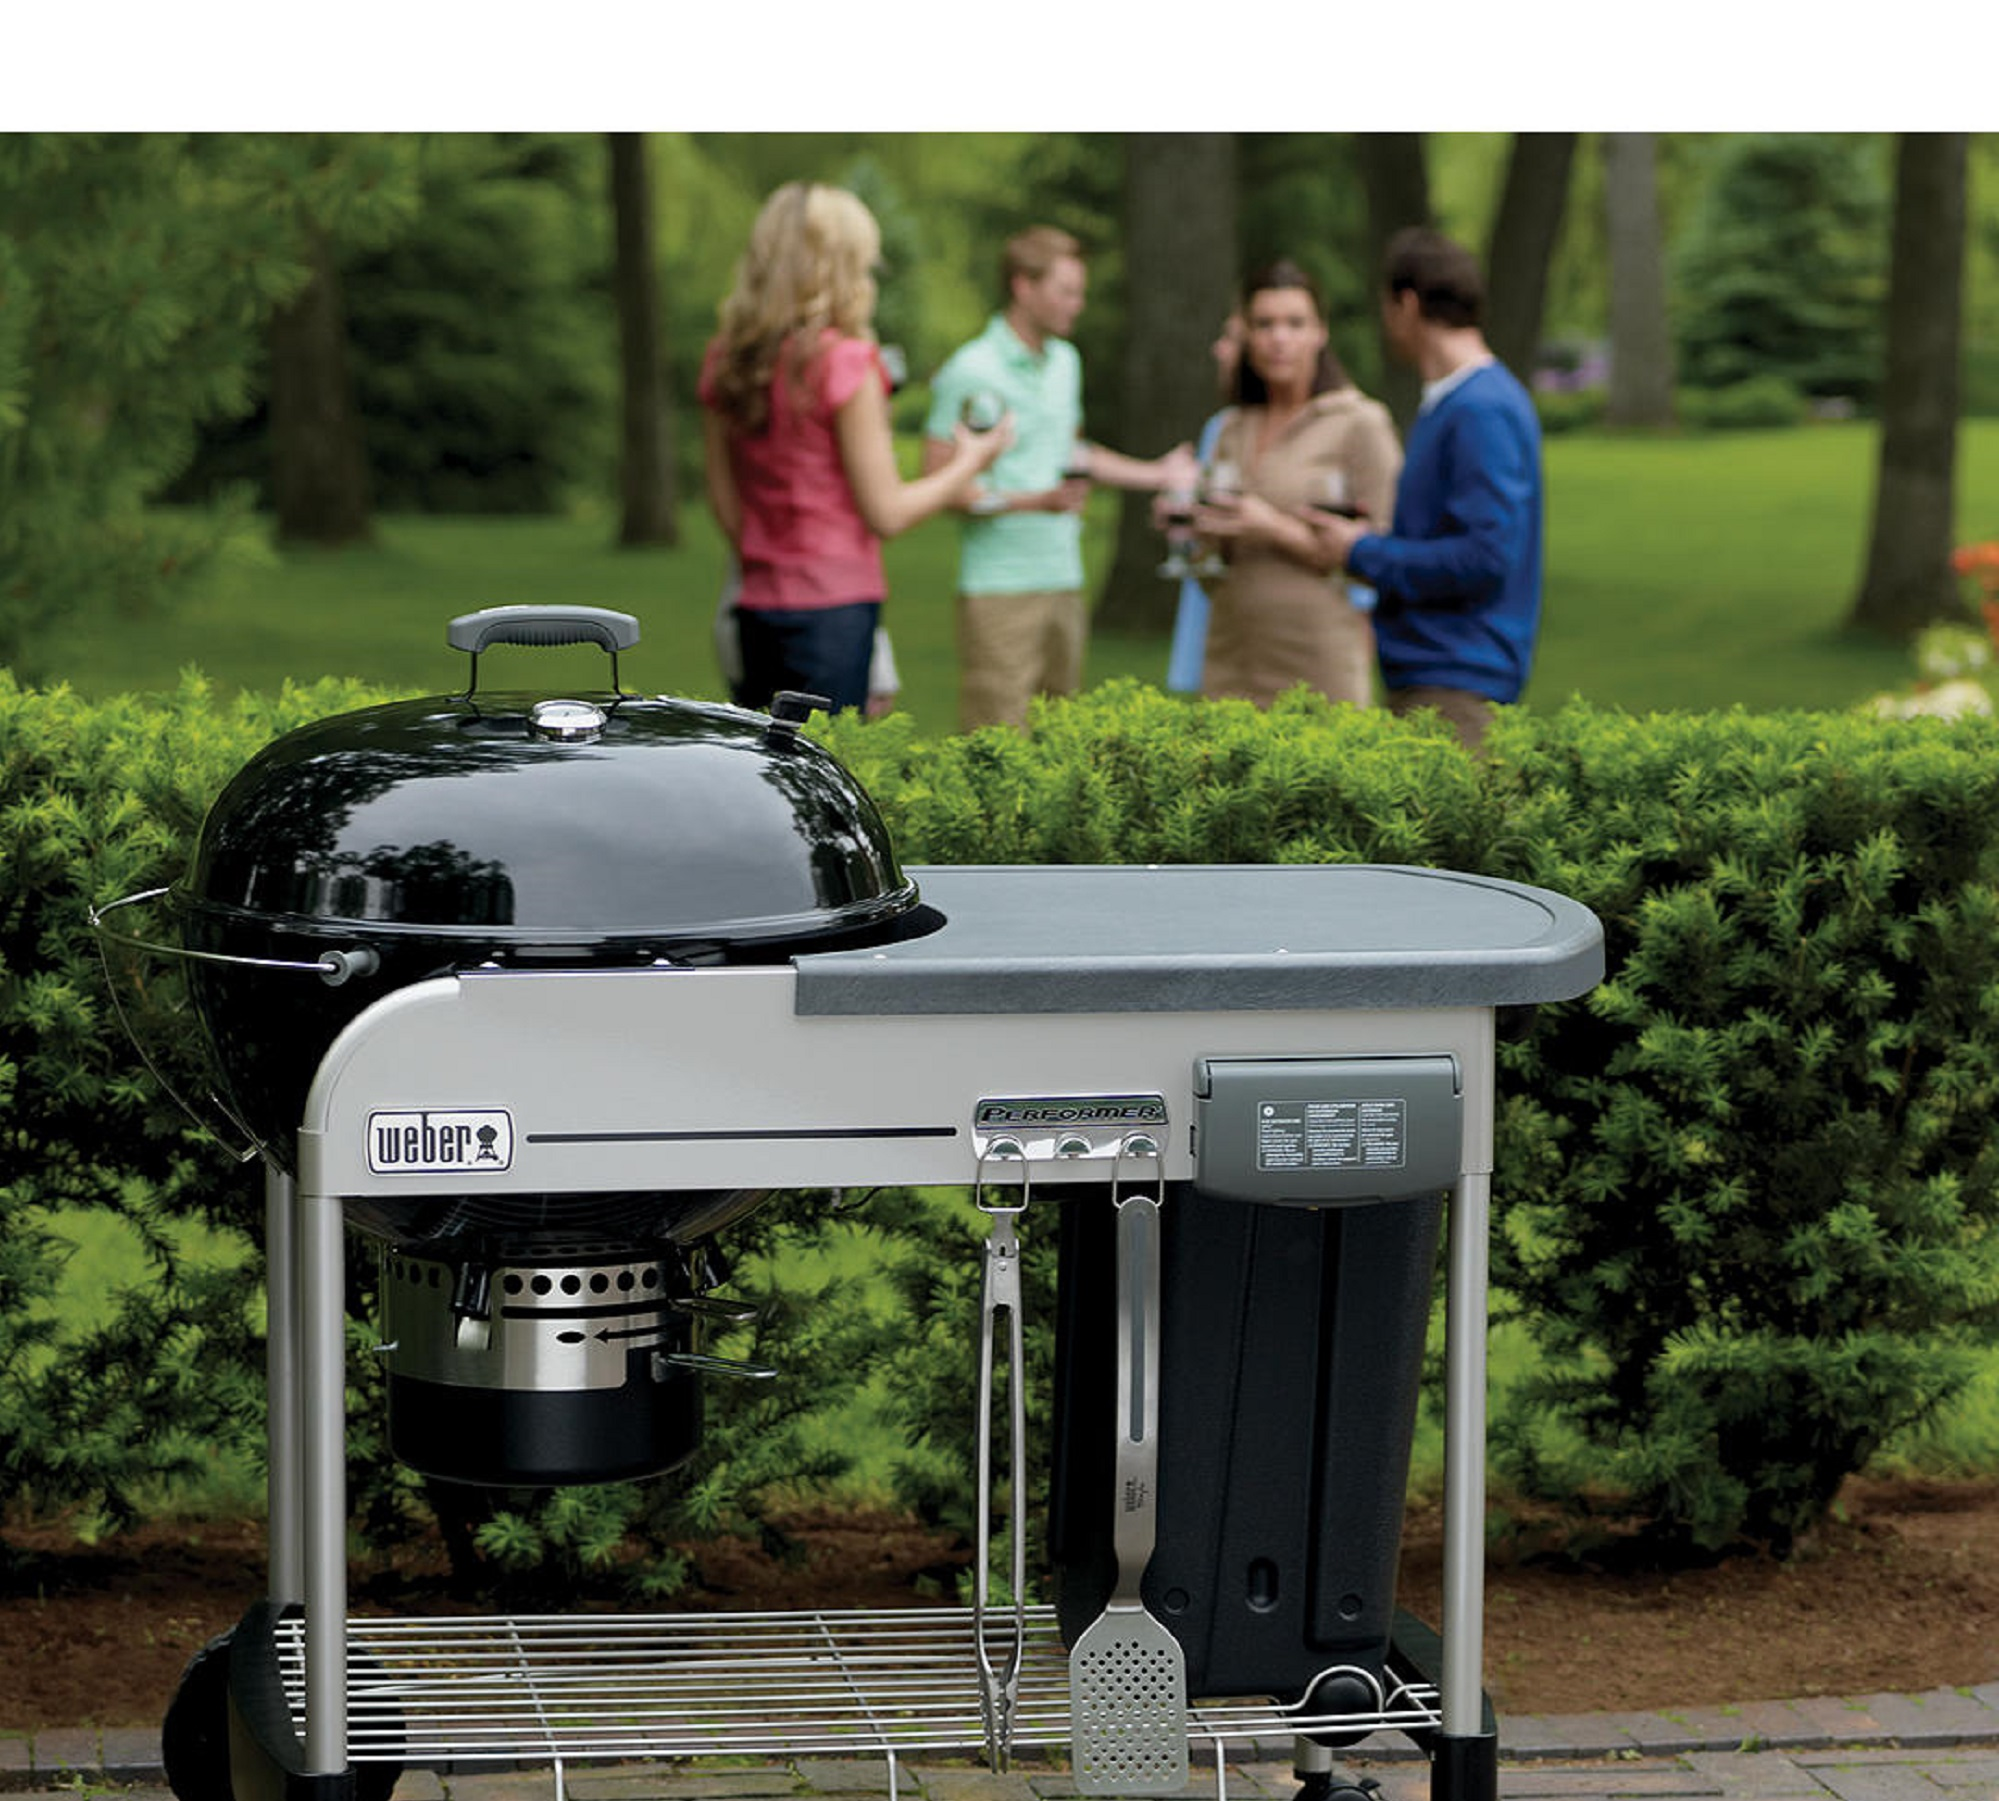 3 in 1 BBQ Charcoal Grill Barbecue Smoker Outdoor Garden Party Cooking Grill